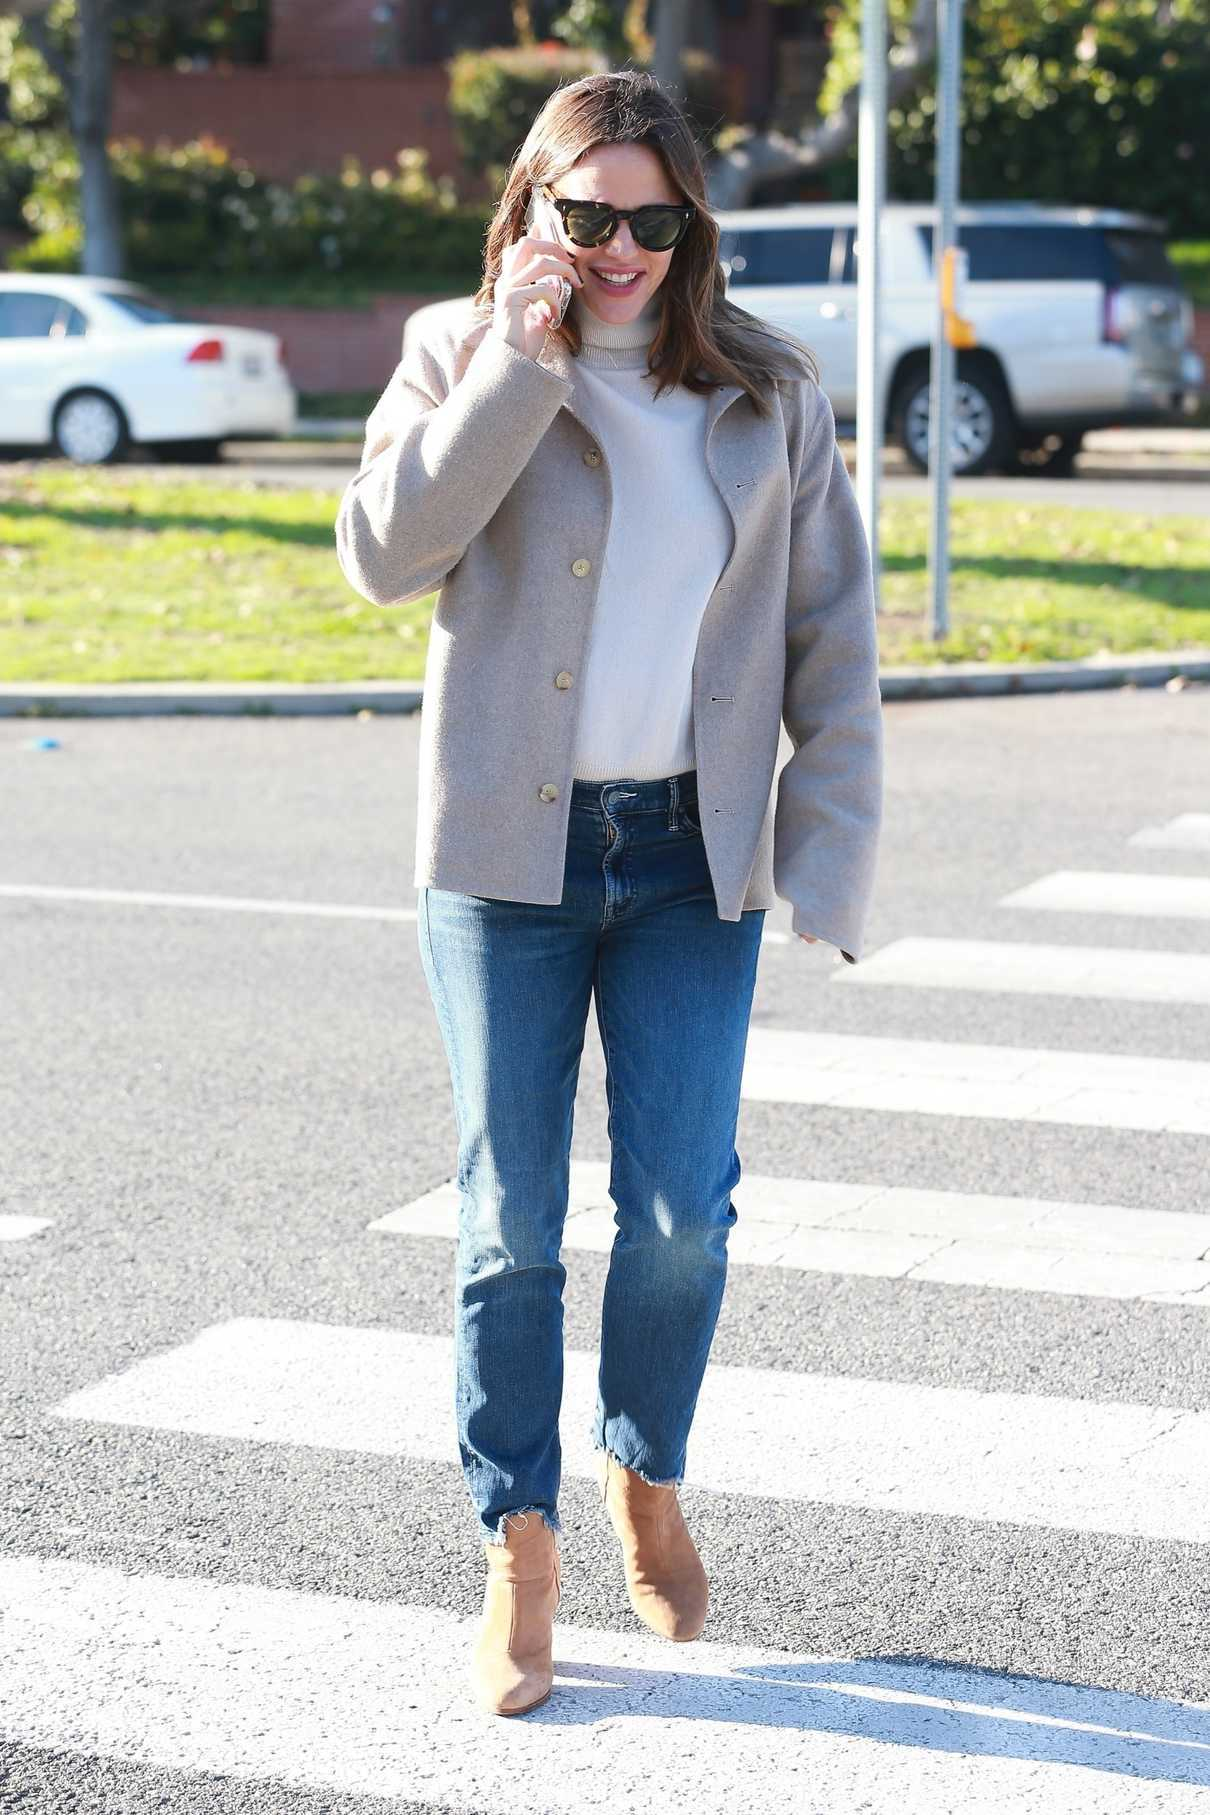 Jennifer Garner in a Beige Jacket